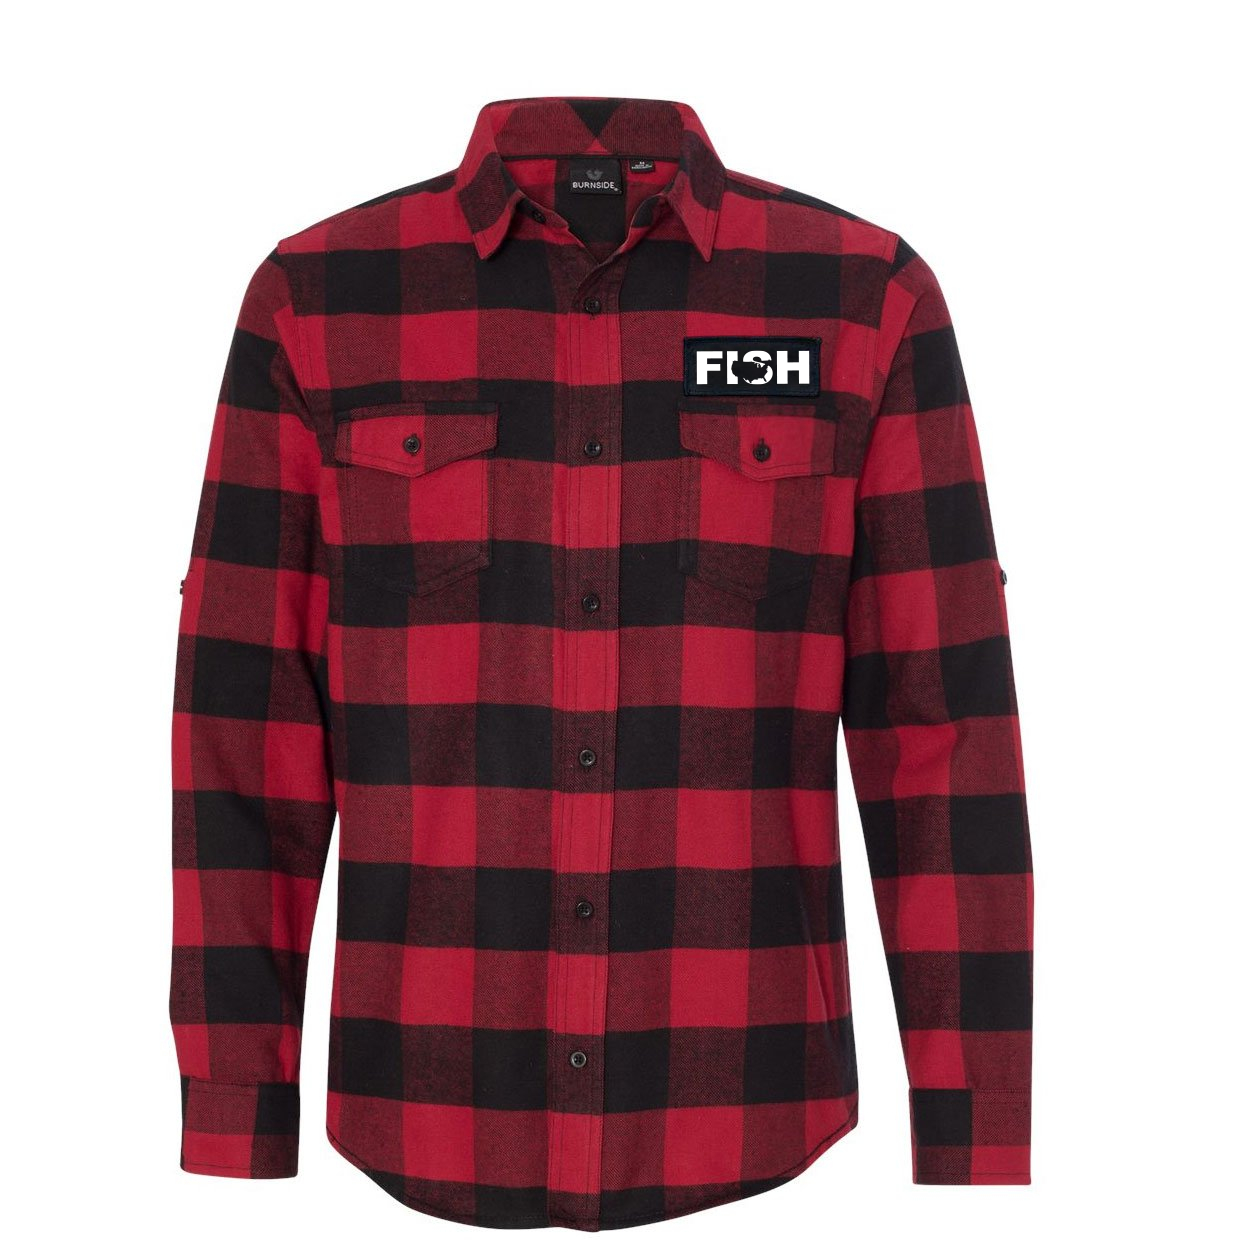 Fish United States Classic Unisex Long Sleeve Woven Patch Flannel Shirt Red/Black Buffalo (White Logo)